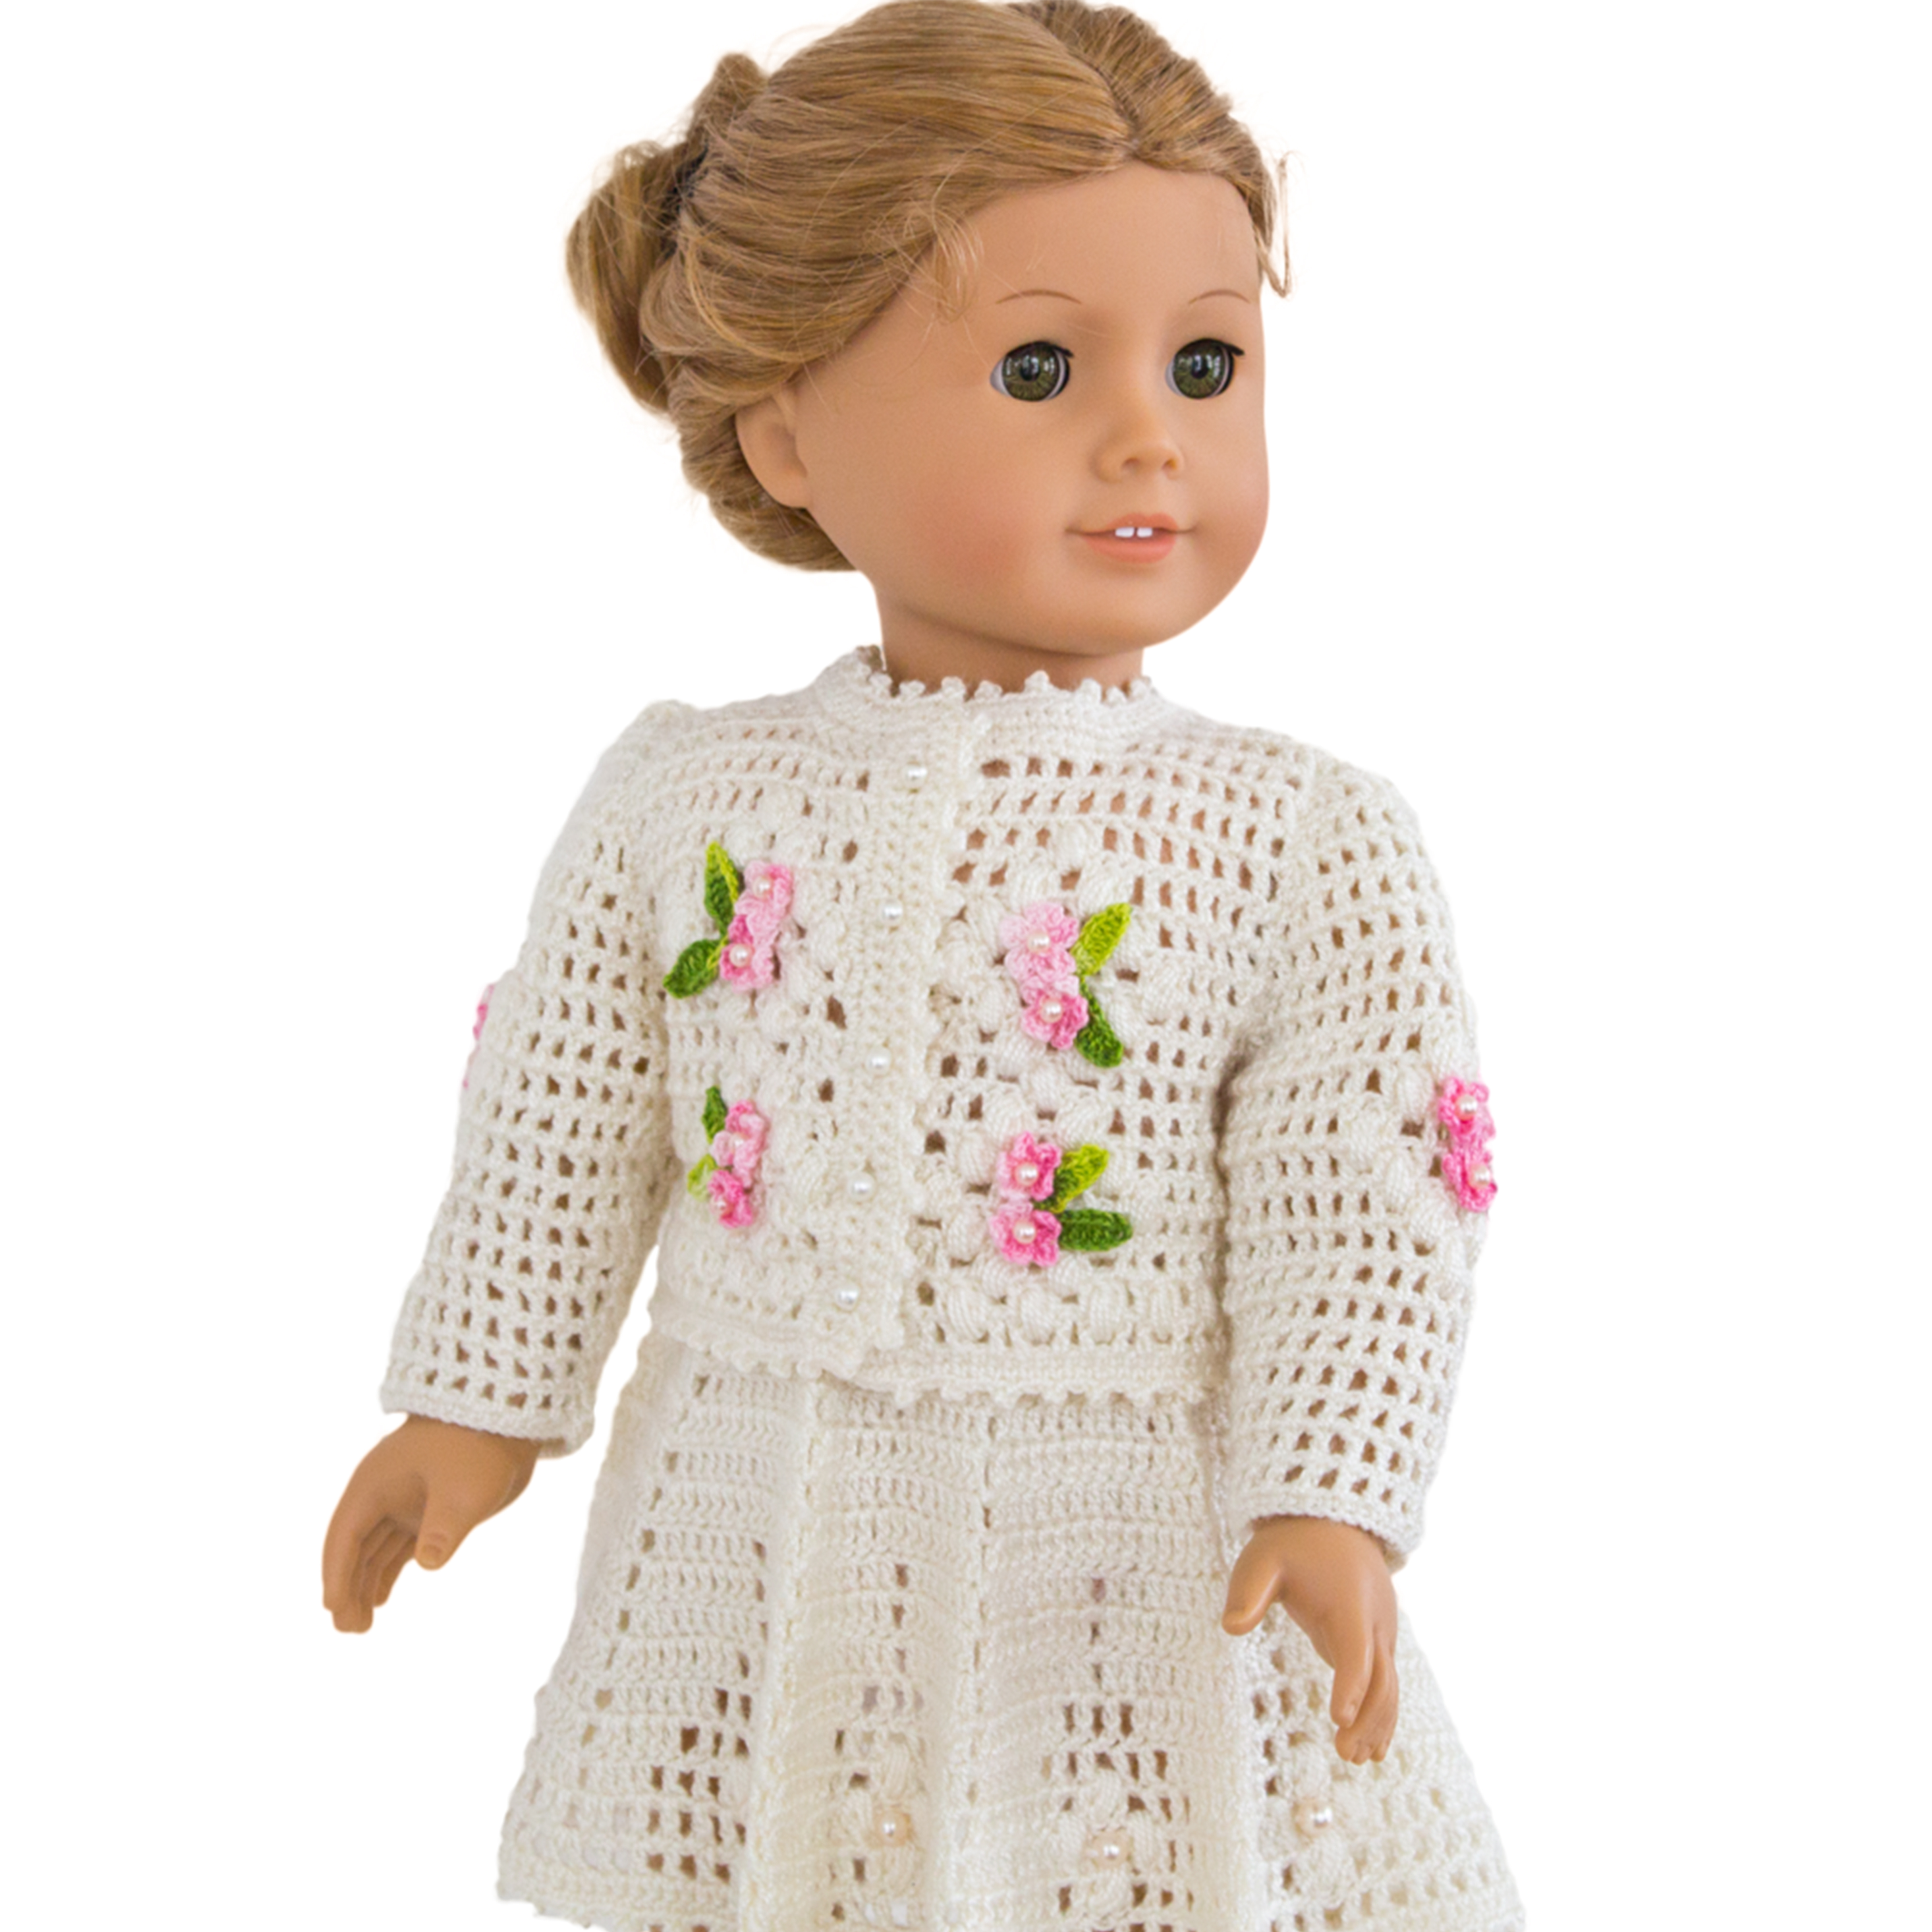 Knit And Crochet Patterns For 18 Inch Dolls : Crochet summer cardigan and skirt for 18 inch / 45 cm dolls.